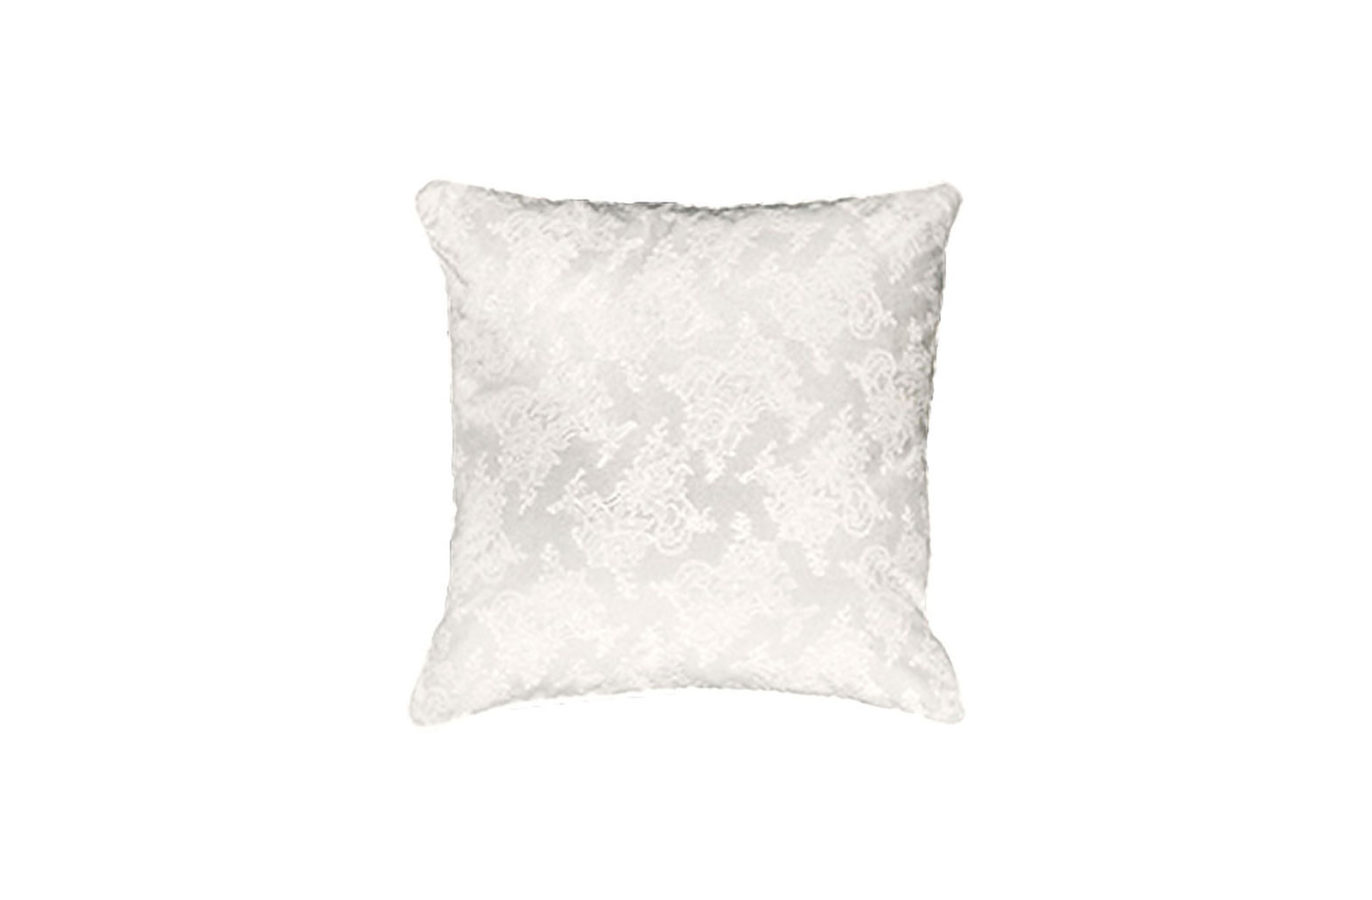 Gianfranco Ferre Home Burlesque Cushion 01